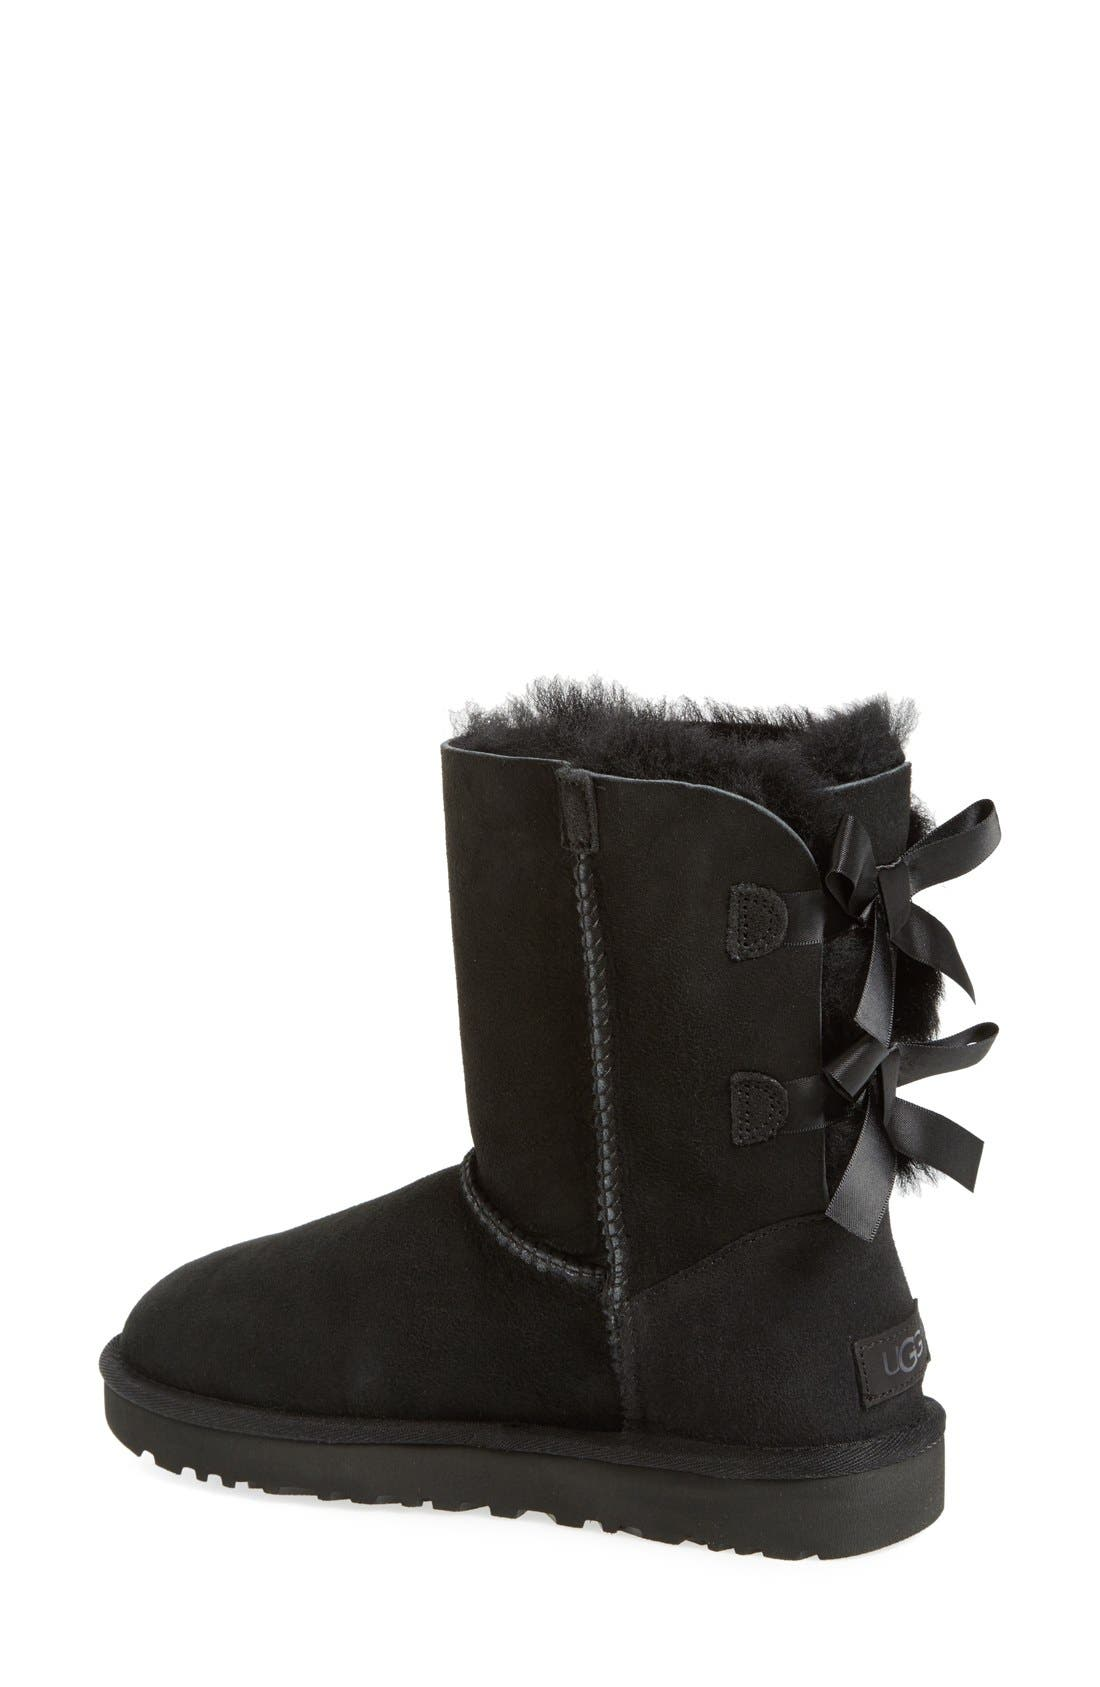 'Bailey Bow II' Boot,                             Alternate thumbnail 2, color,                             BLACK SUEDE